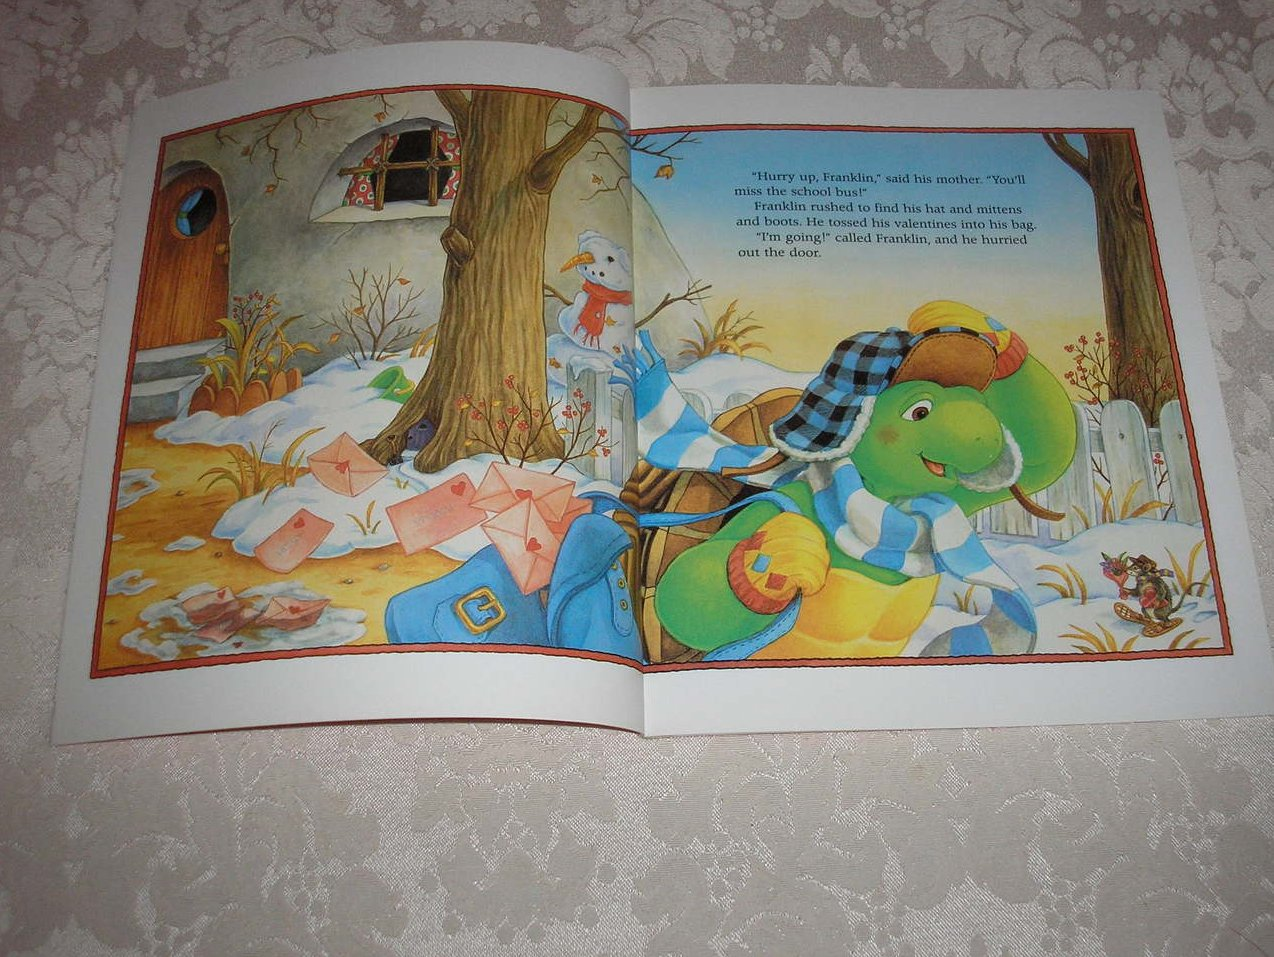 Image 2 of Franklin's Valentines Paulette Bourgeois Like New Softcover Lot of 6